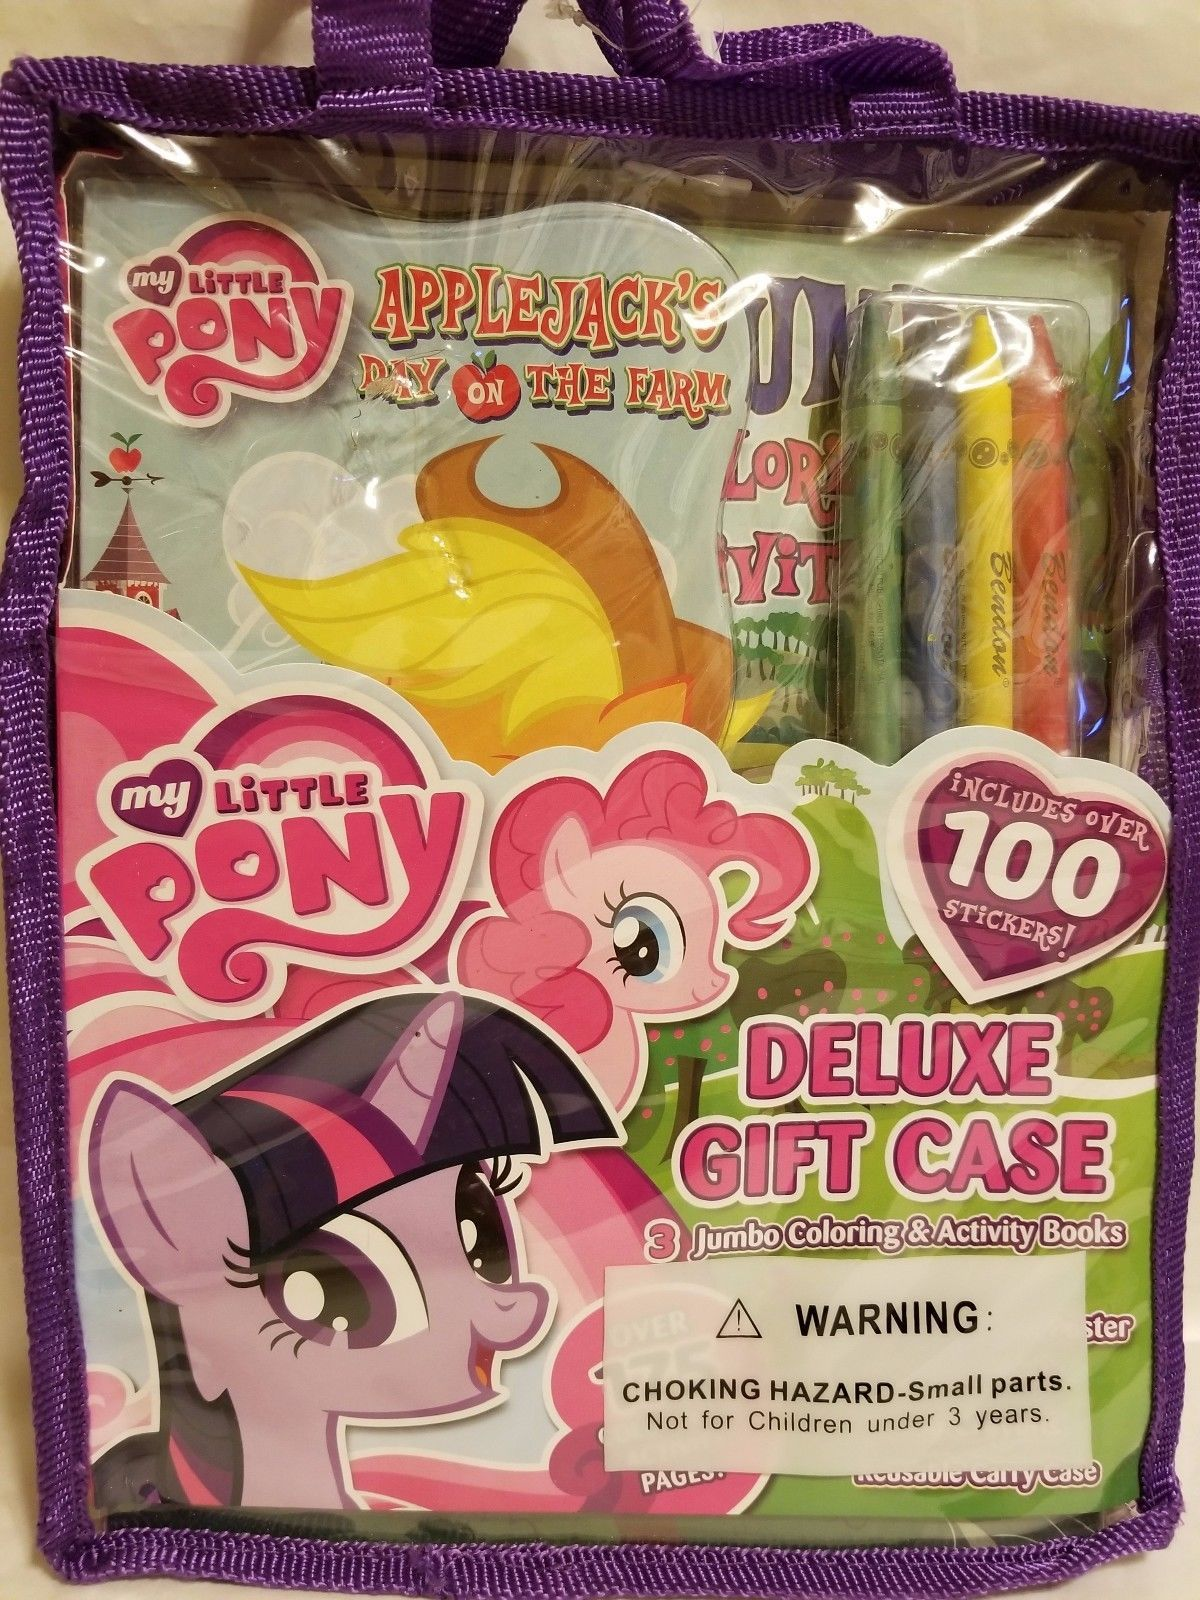 Lot 3 My Little Pony Deluxe Gift Case and 50 similar items